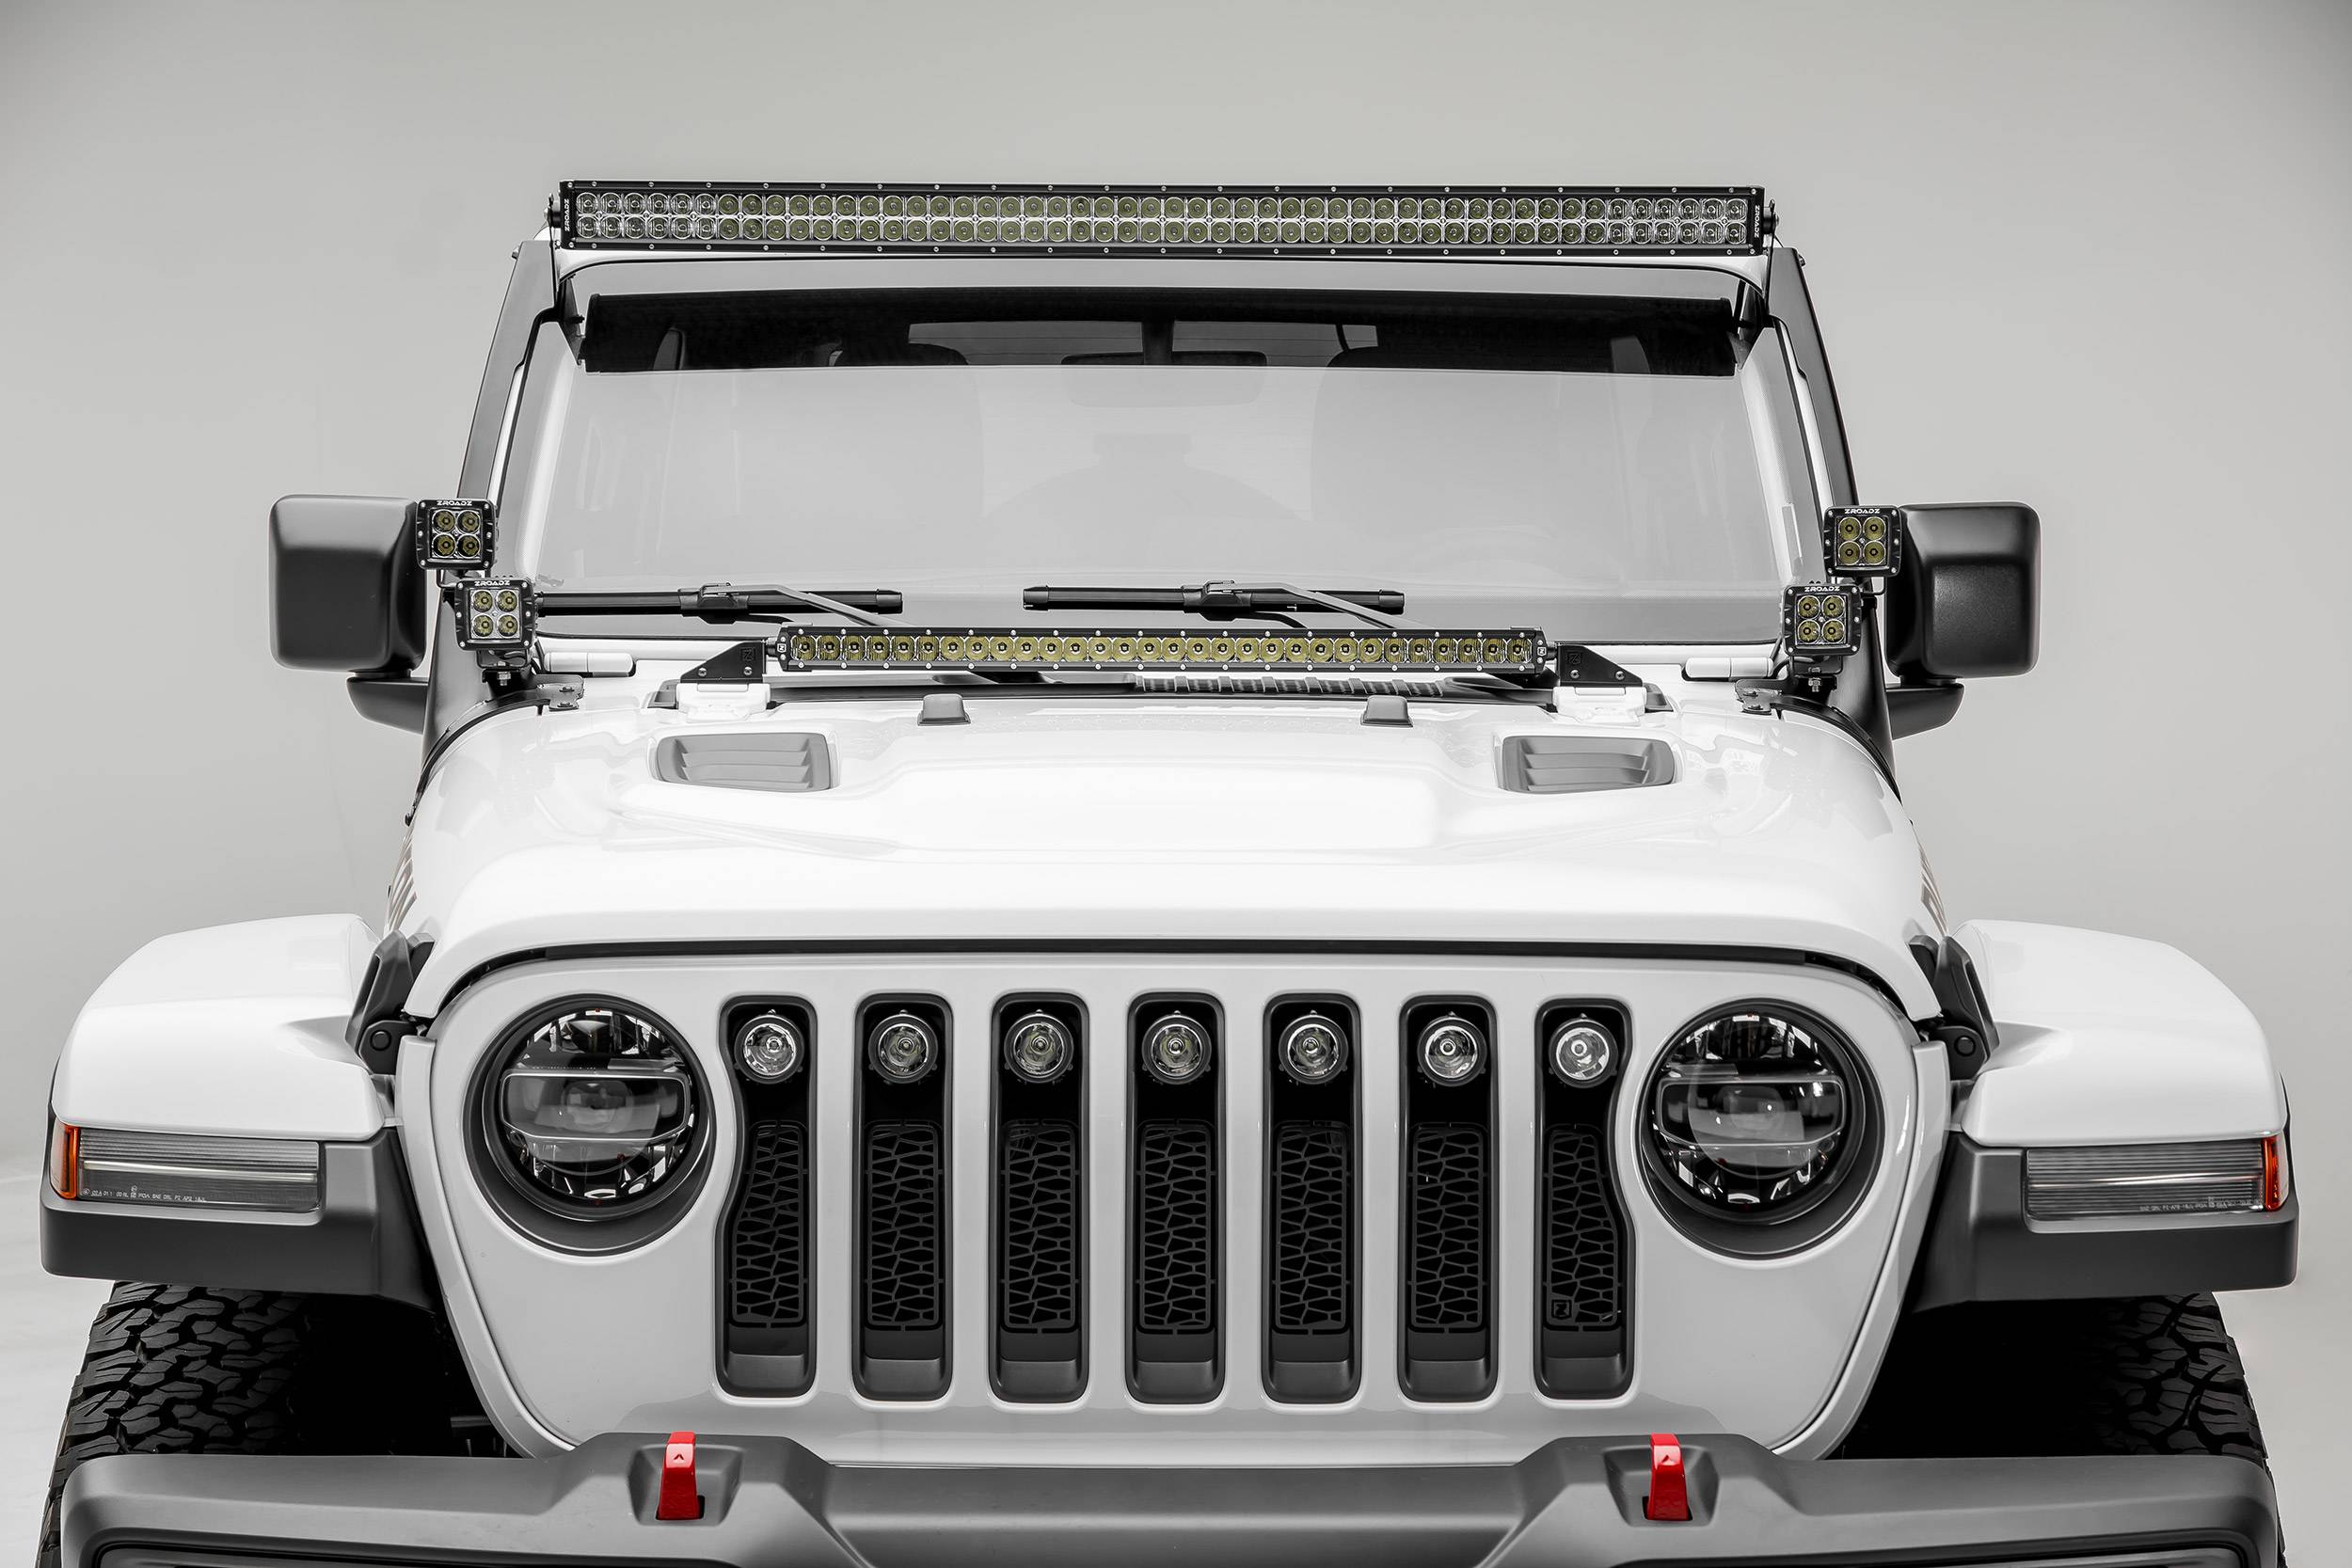 2018 2019 Jeep Jl Front Roof Led Bracket To Mount 1 50 Or 52 Inch Staight Led Light Bar And 4 3 Inch Led Pod Lights Pn Z374831 Bk4